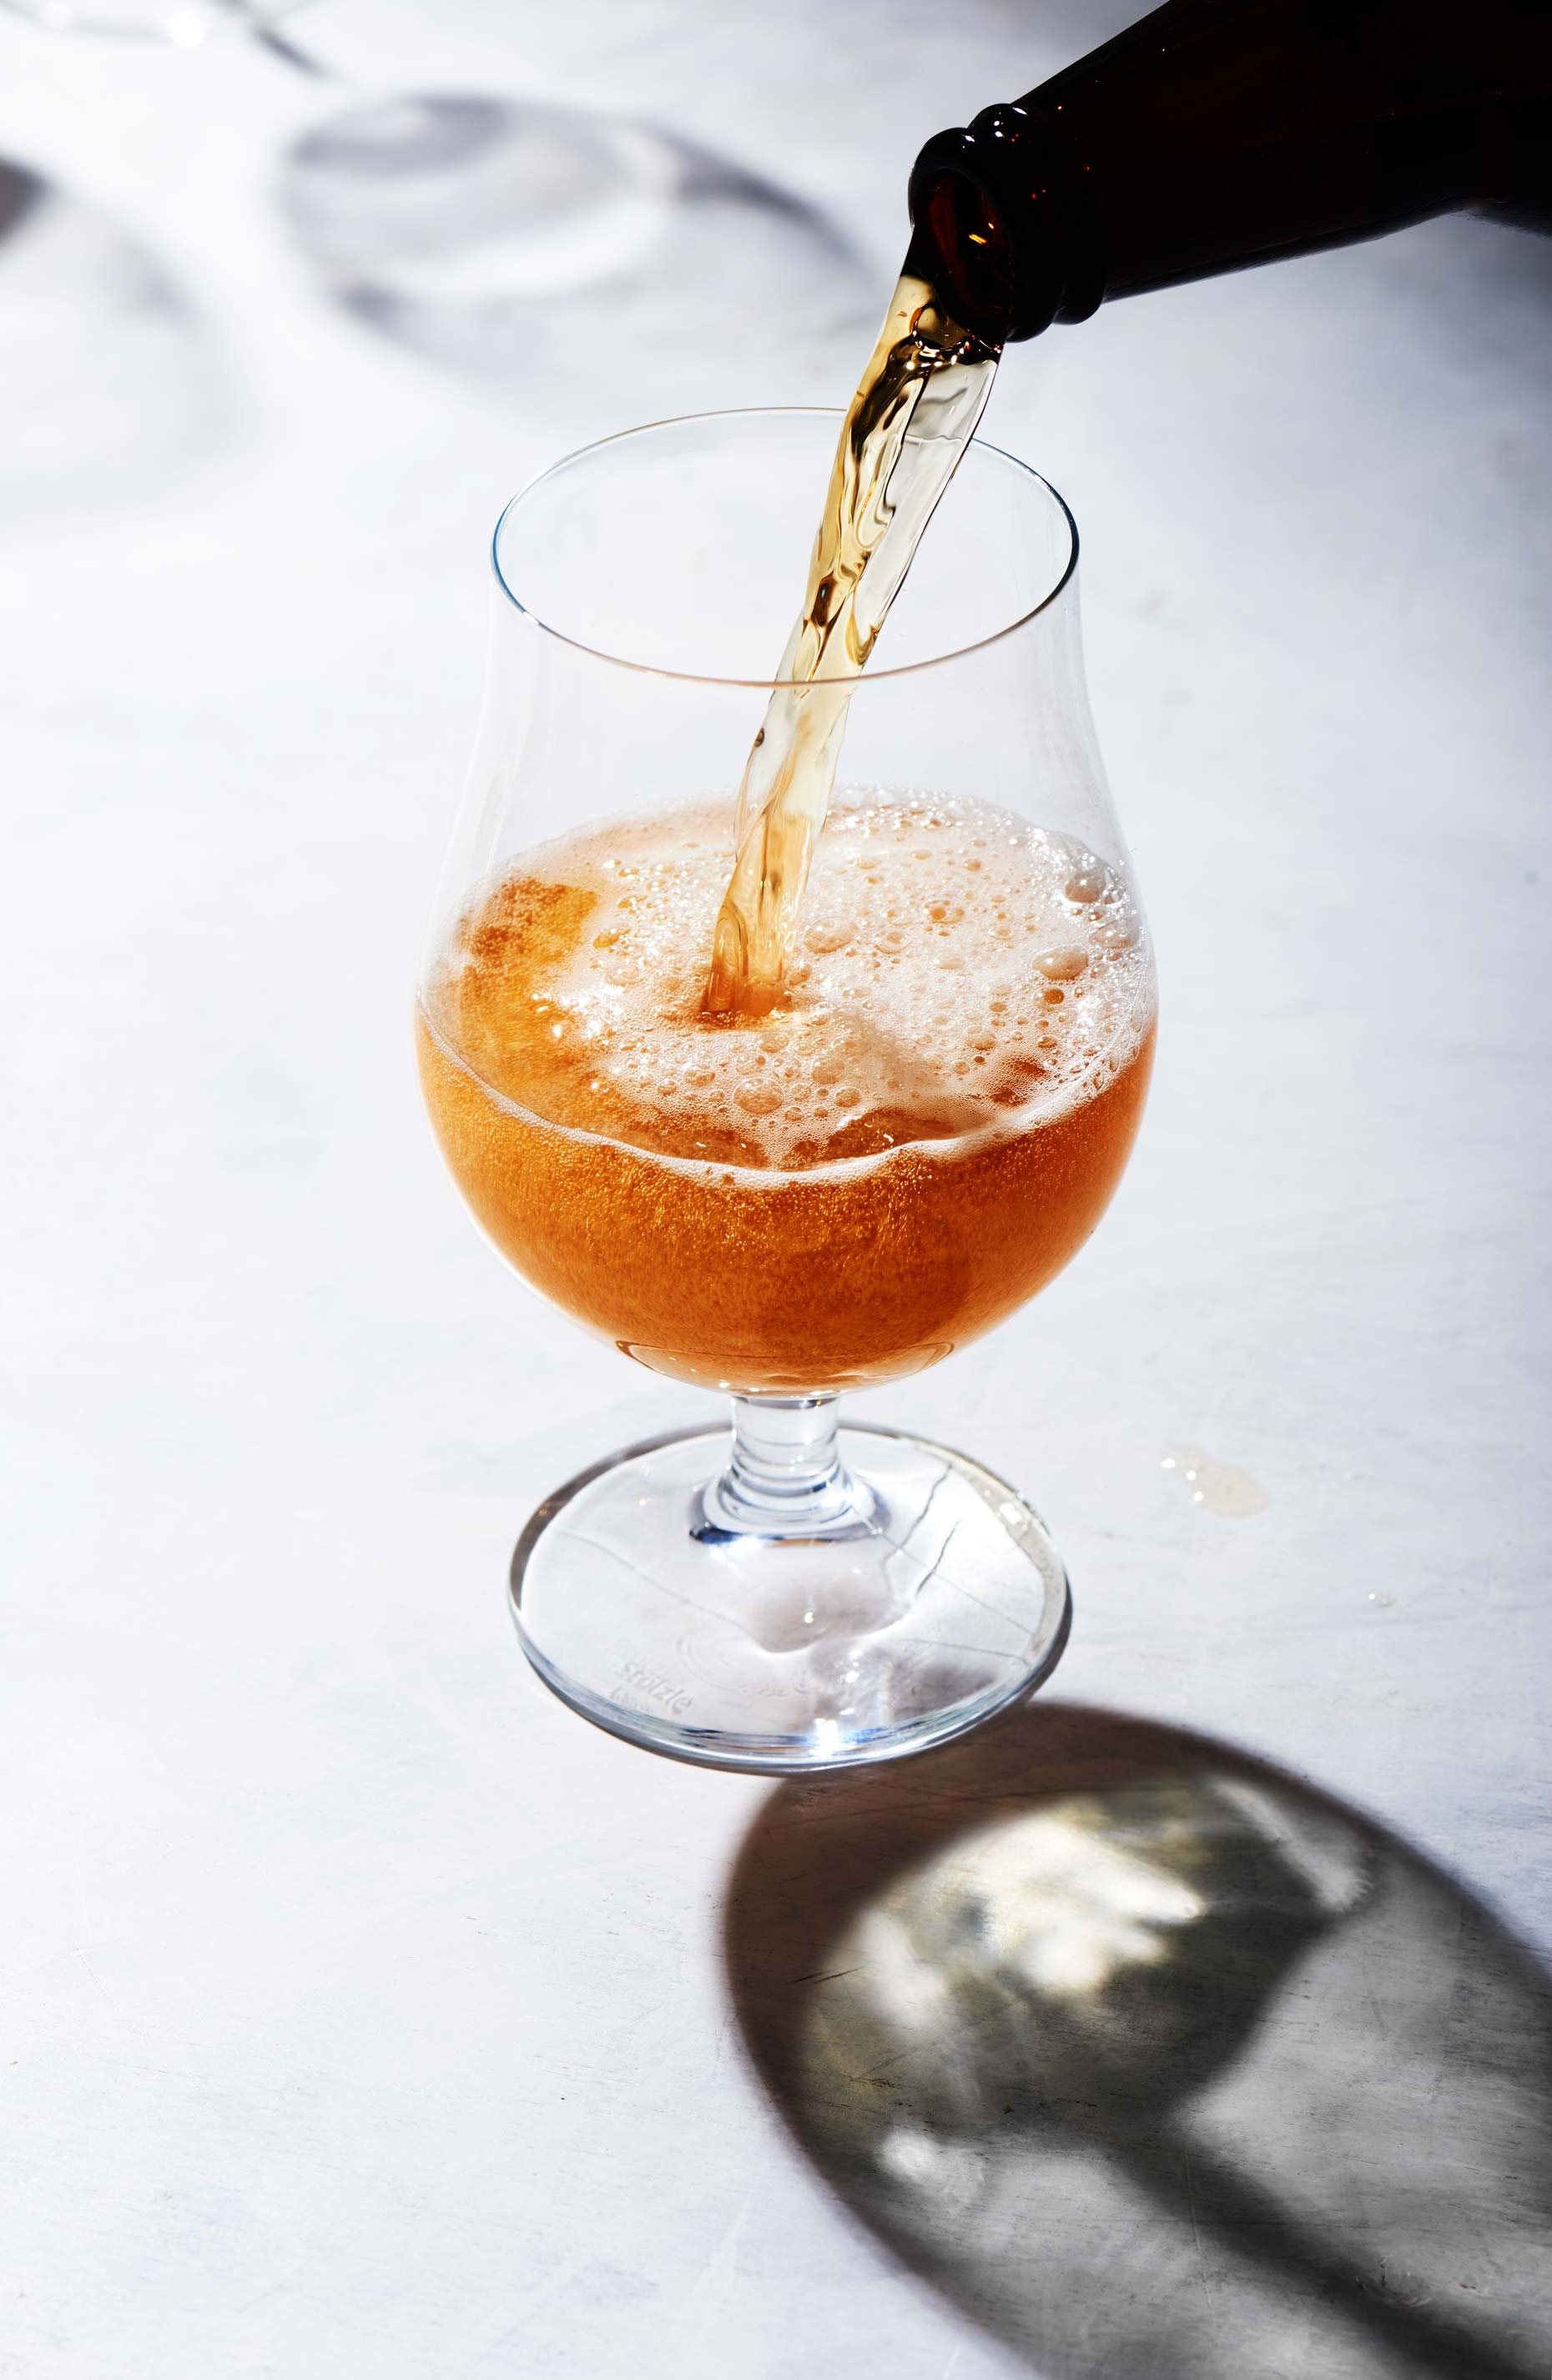 Glass of beer being poured on a white surface, shot from the side by Food and Beverage Photographer Adrian Mueller, New York